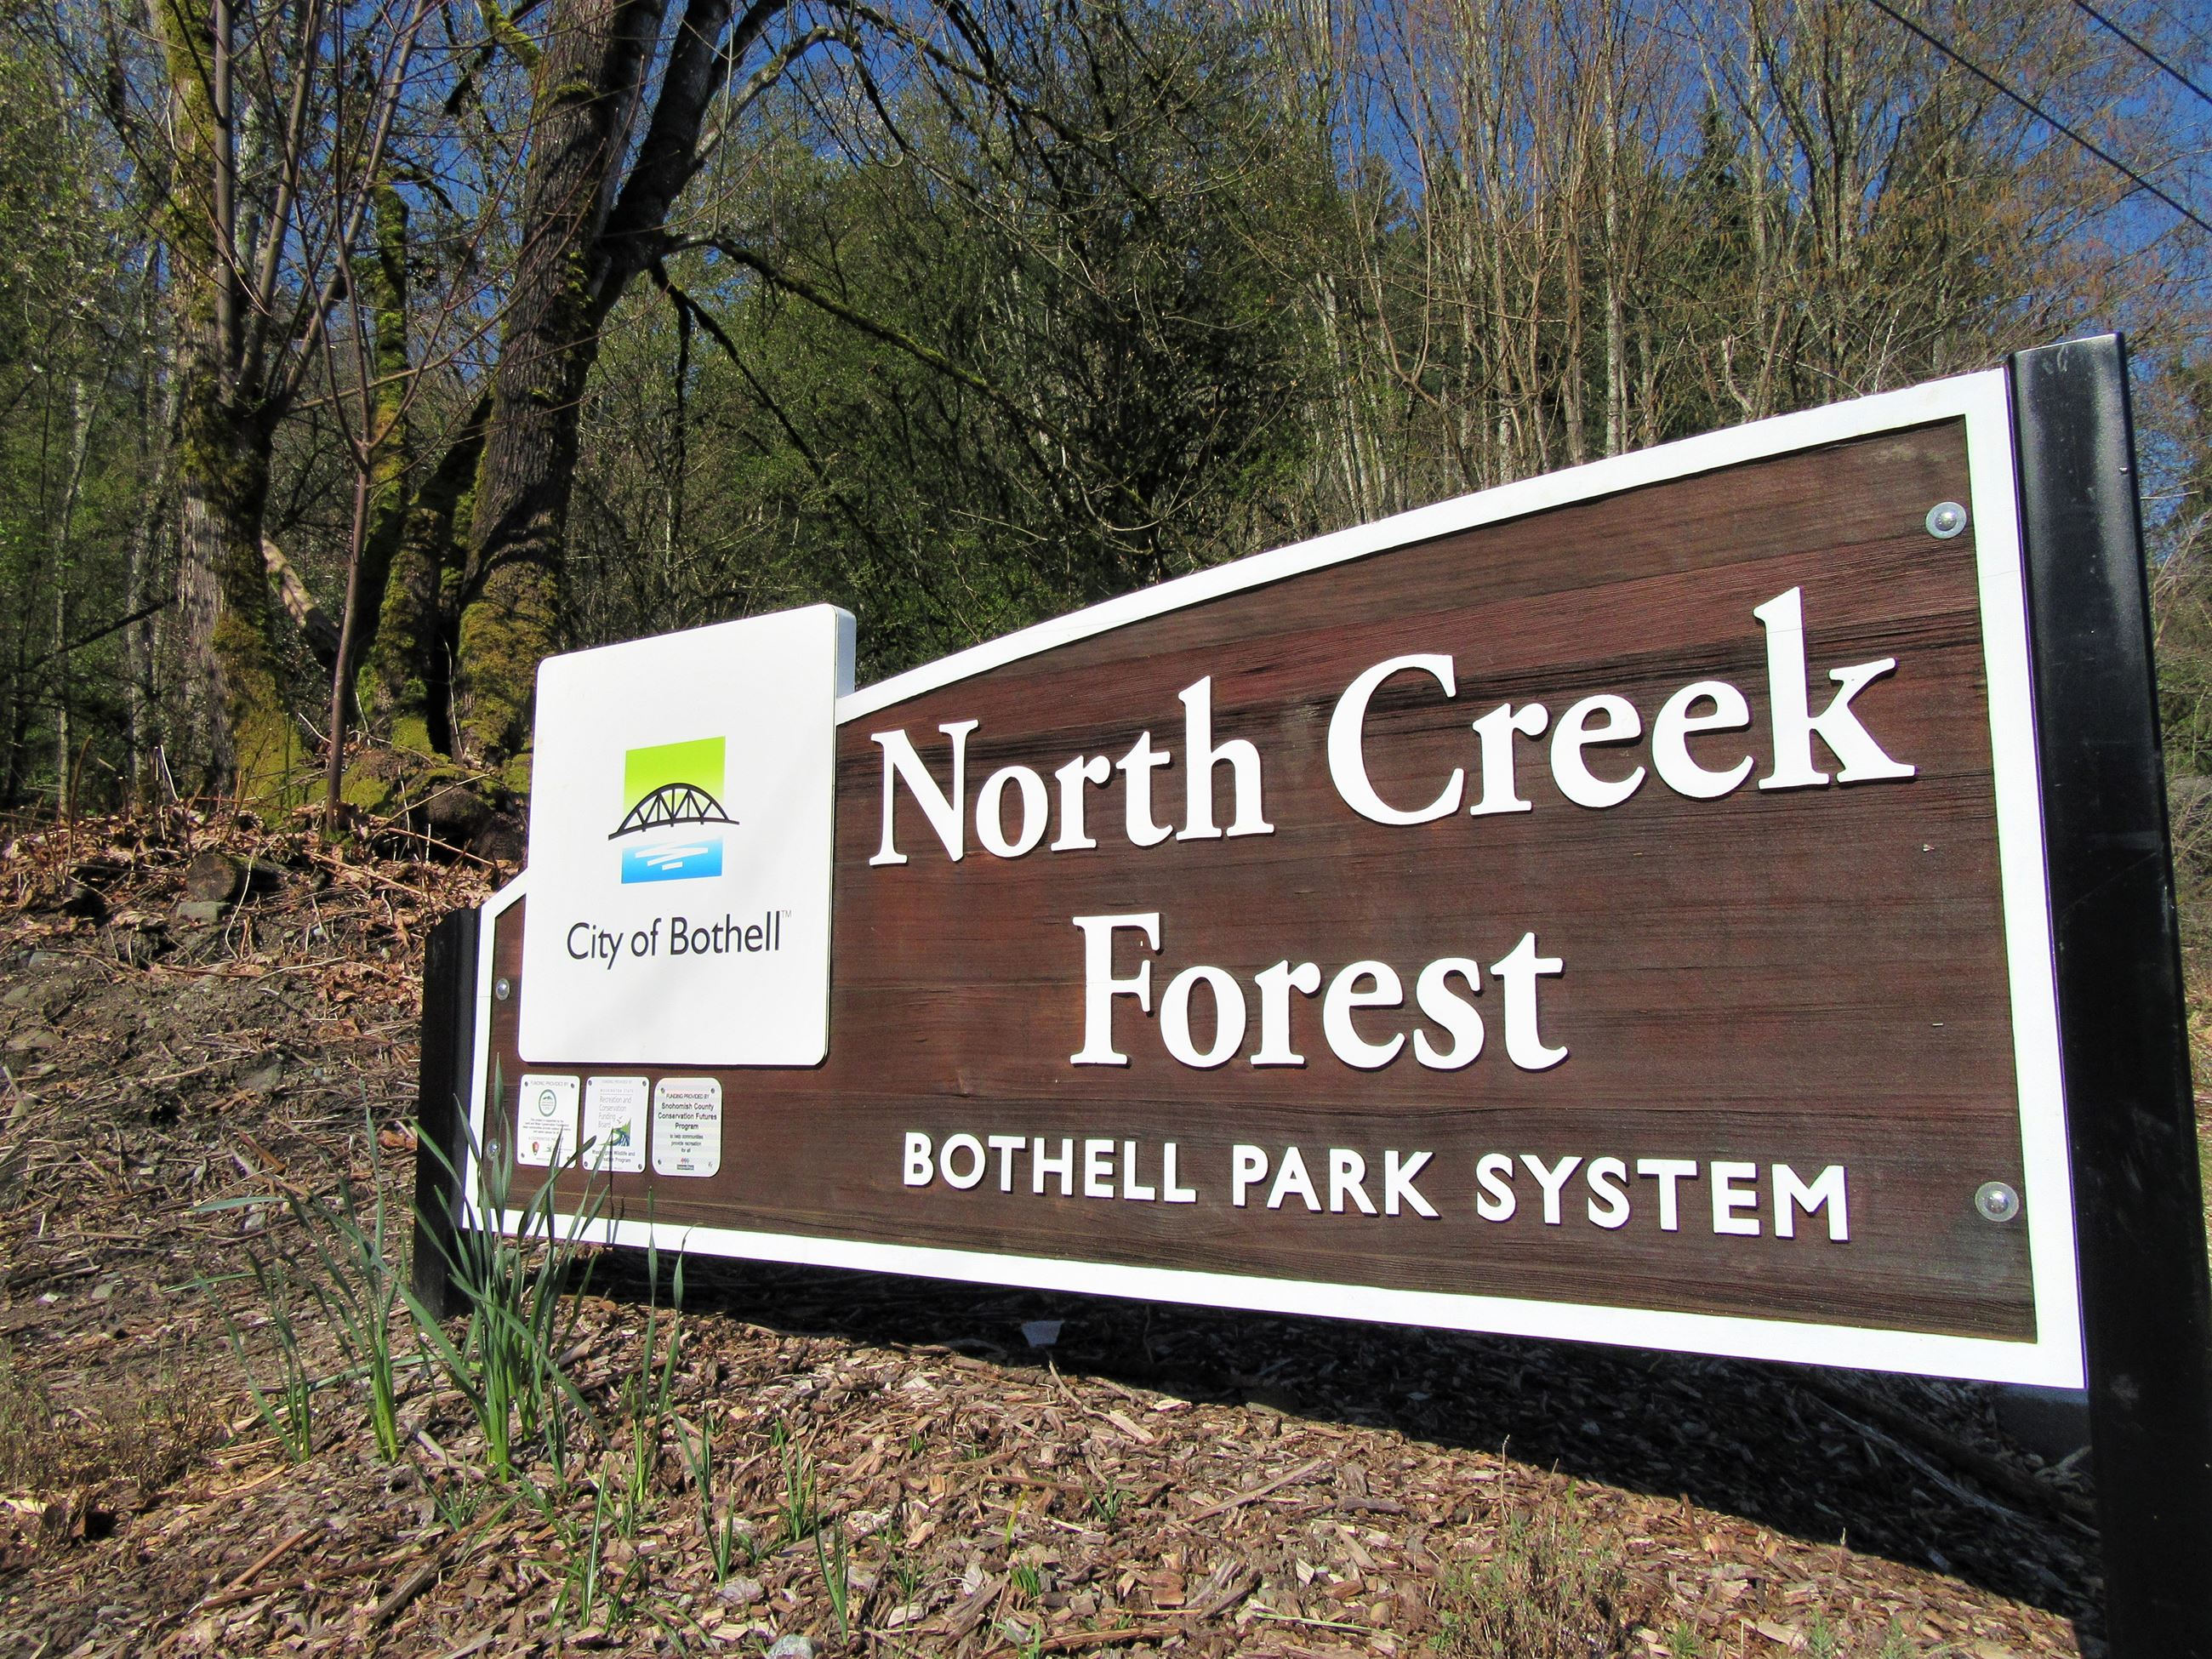 North Creek Forest sign